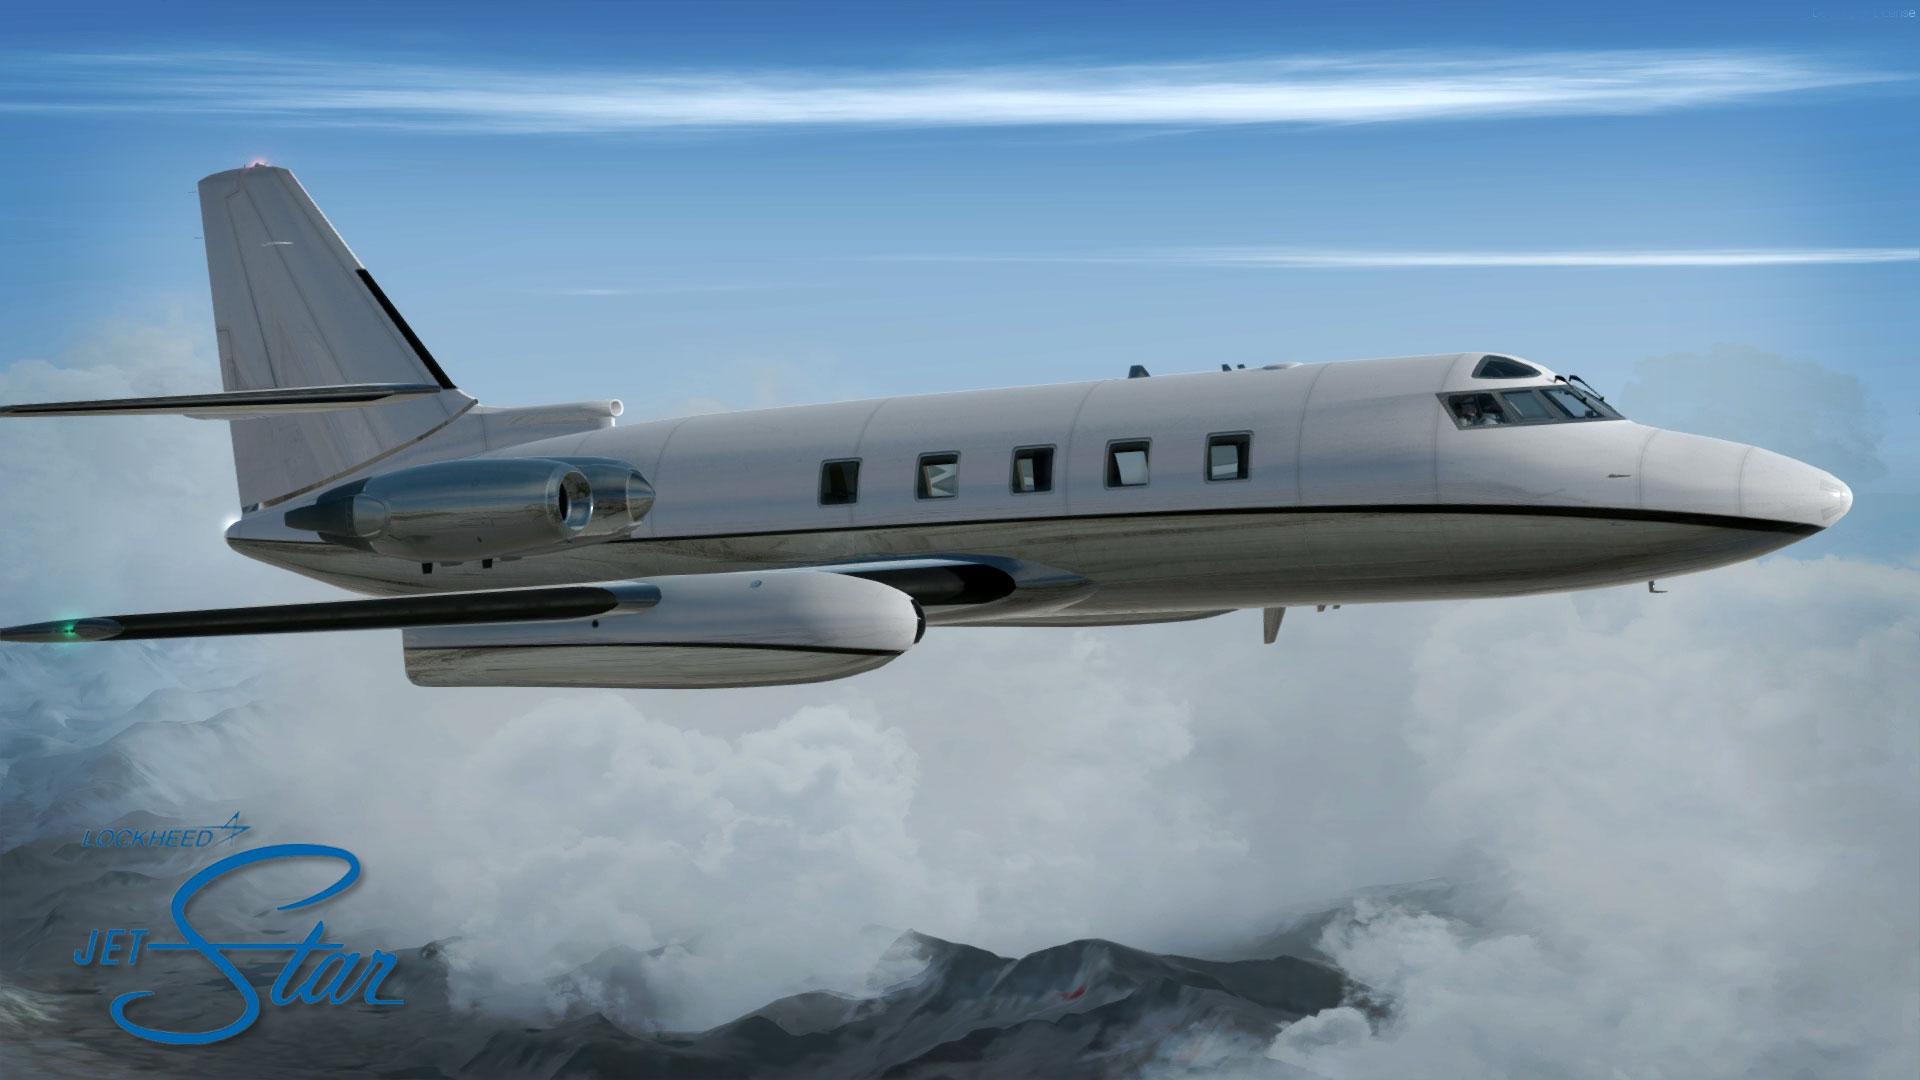 Lockheed Jetstar Project for FSX, P3D and P3D 64-bit - Page 3